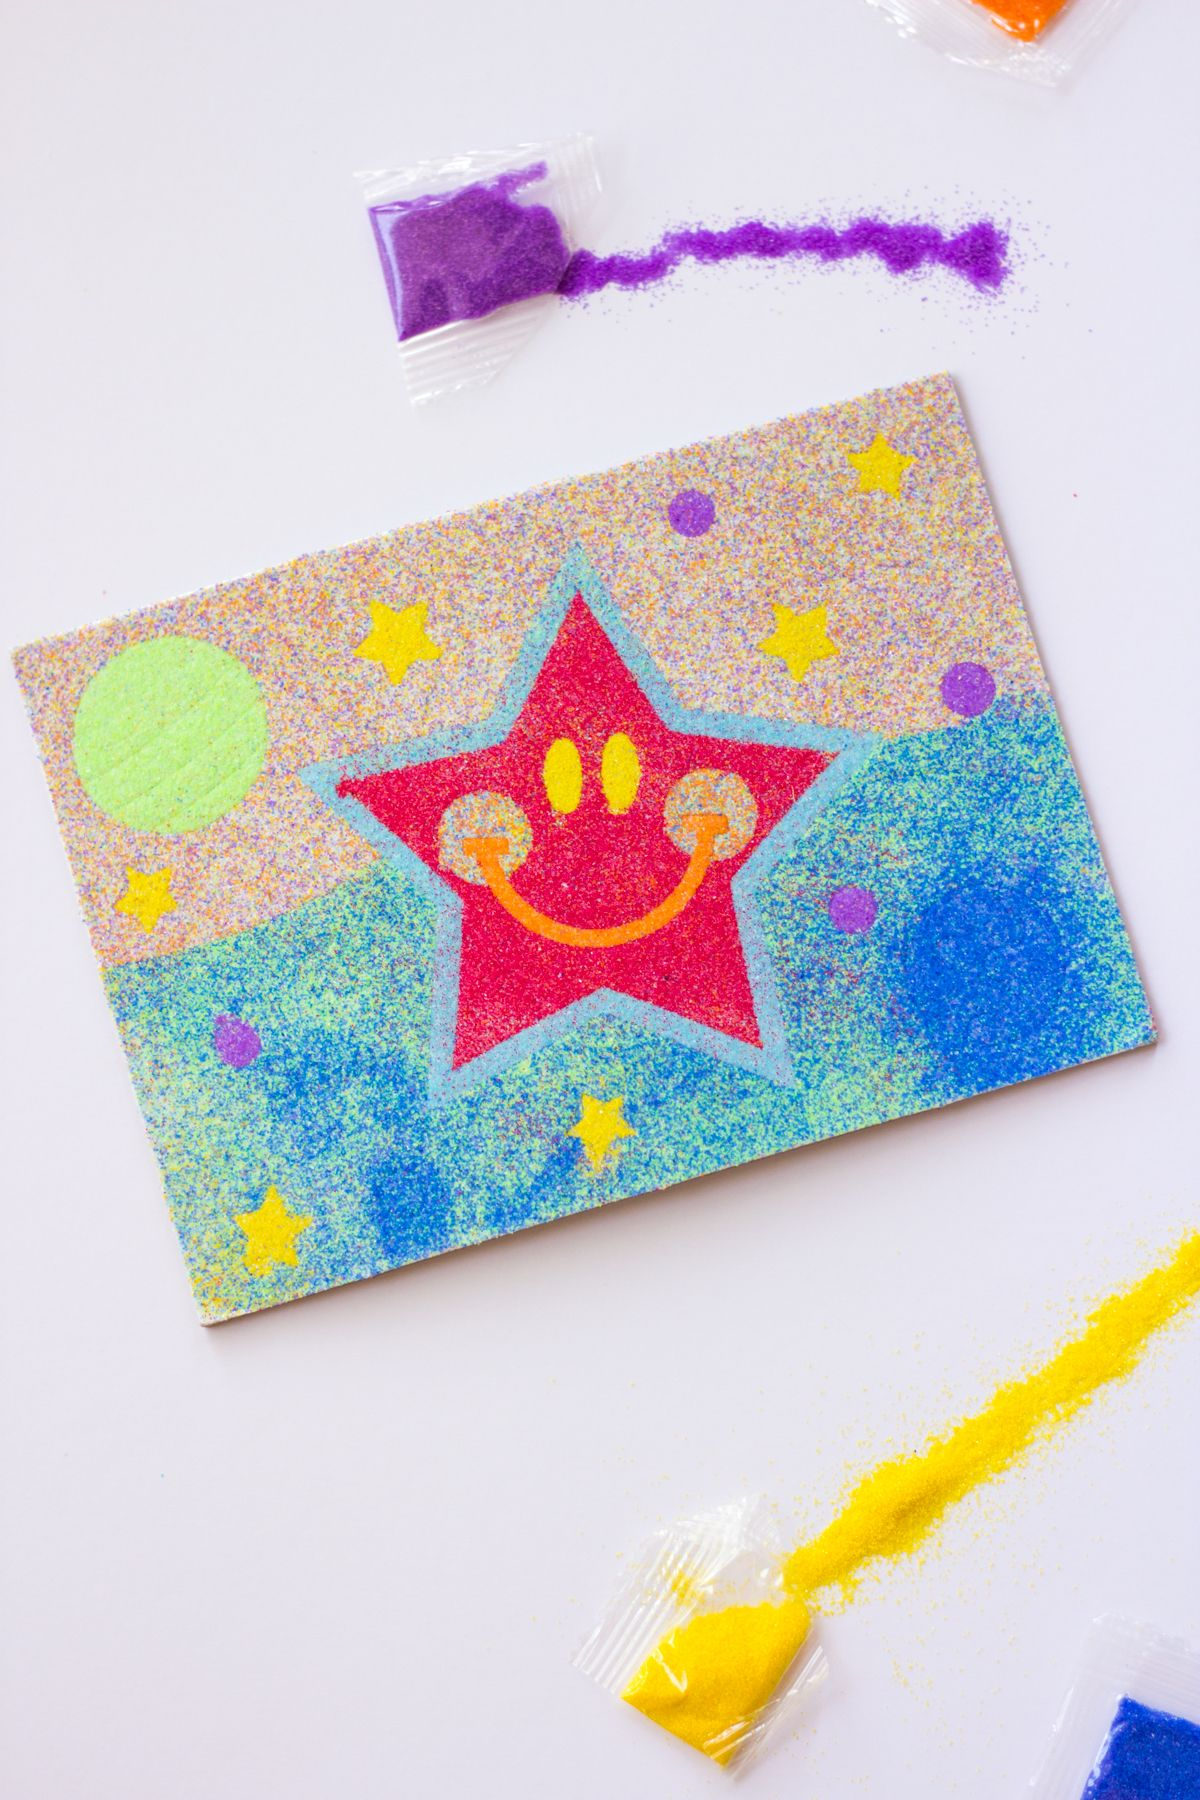 Colorful Space Sand Art Craft